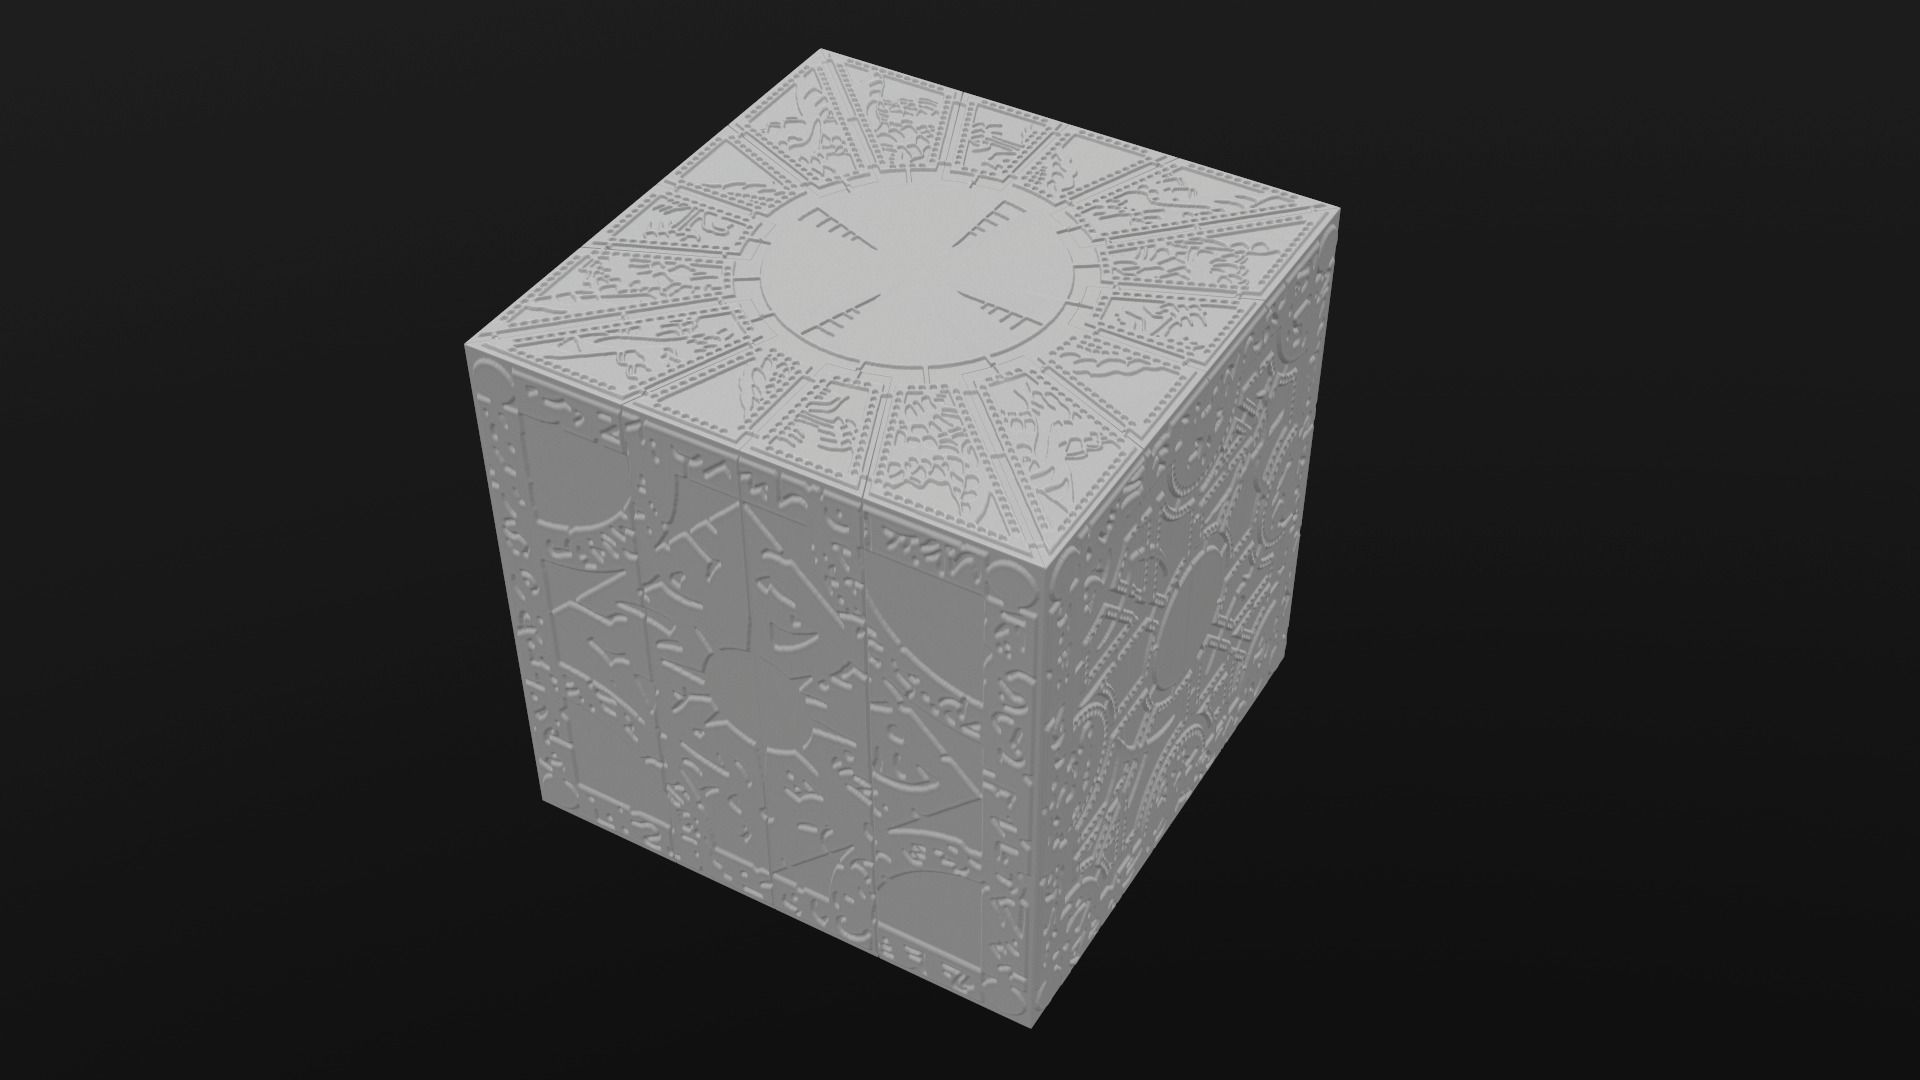 Printable Hellraiser puzzle box lament configuration